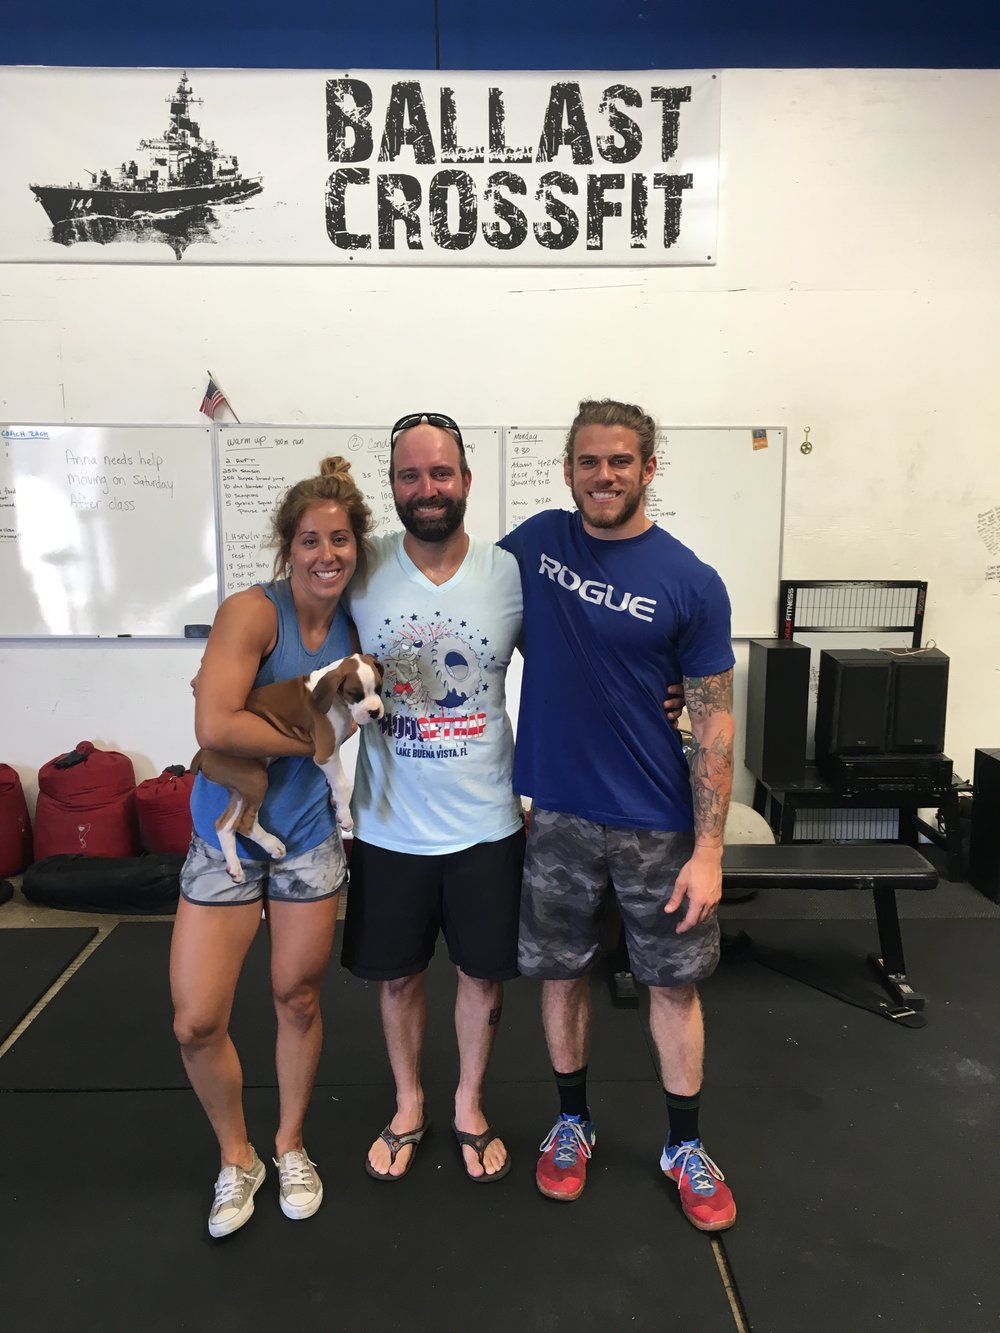 Said farewell to another awesome member Jesse. CrossFit community is pretty amazing.